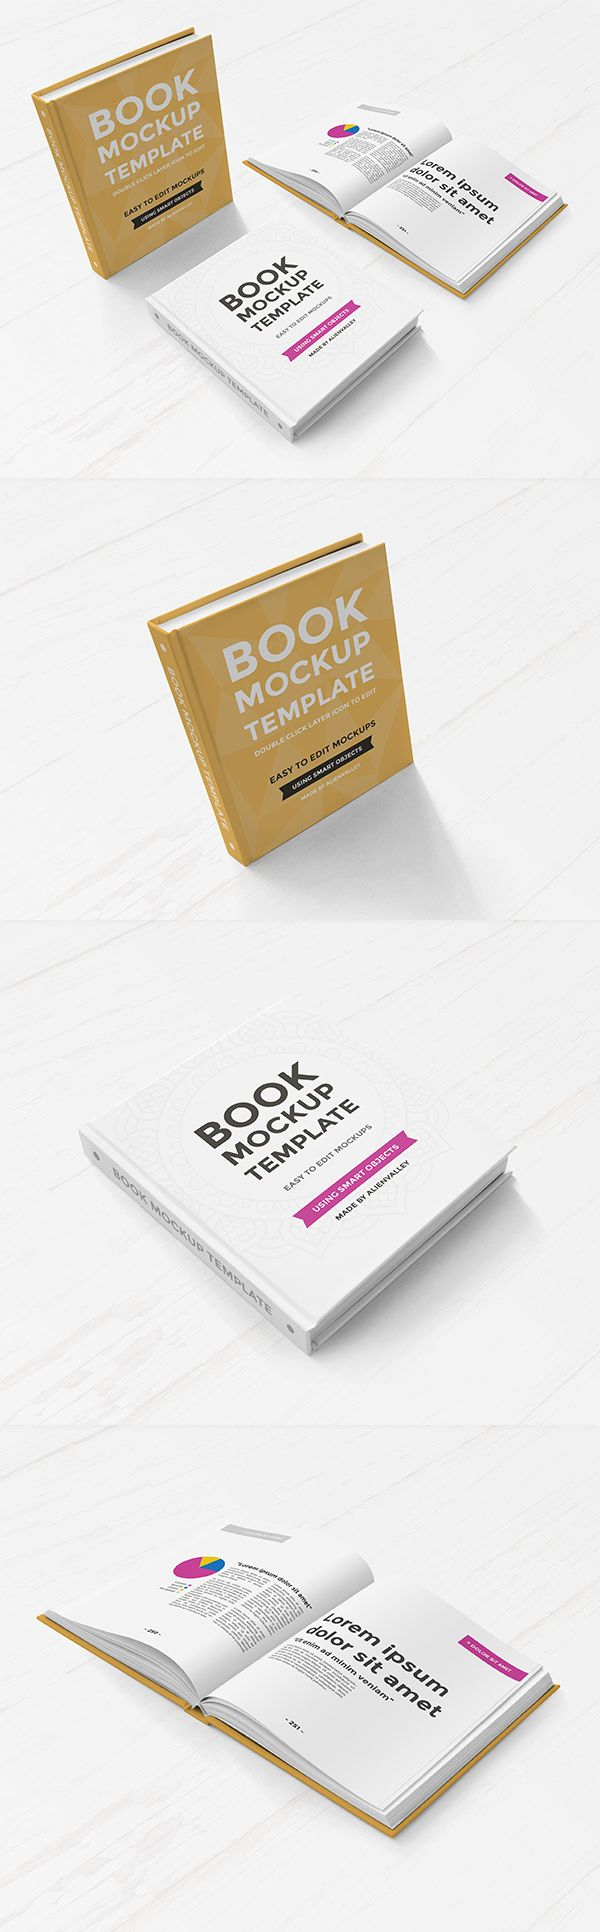 Free Hardcover Book Mockup Set | Alien Valley | #free #photoshop ...